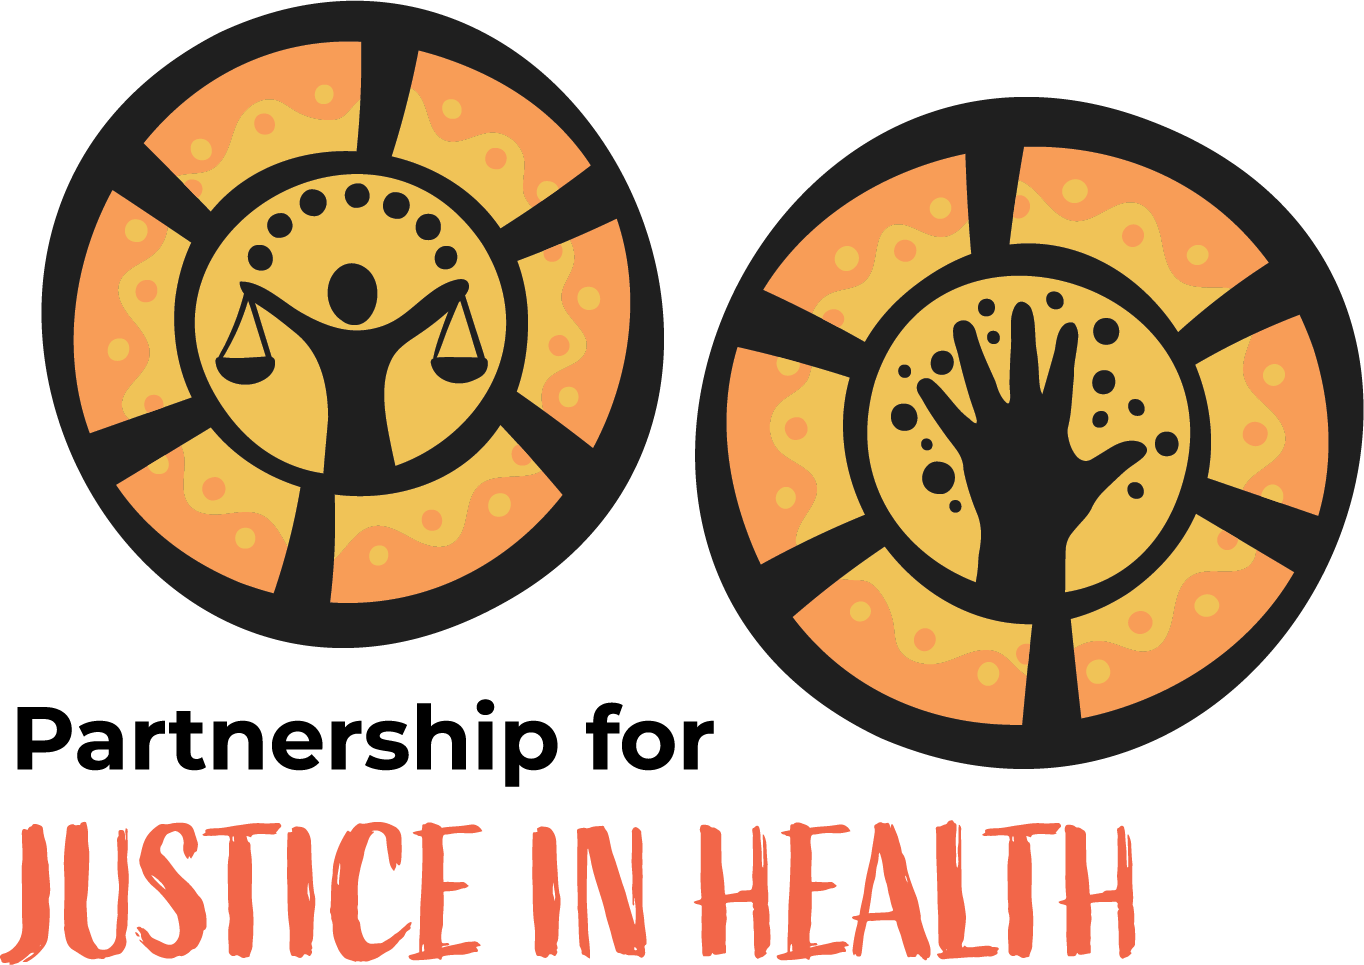 The Partnership for Justice in Health